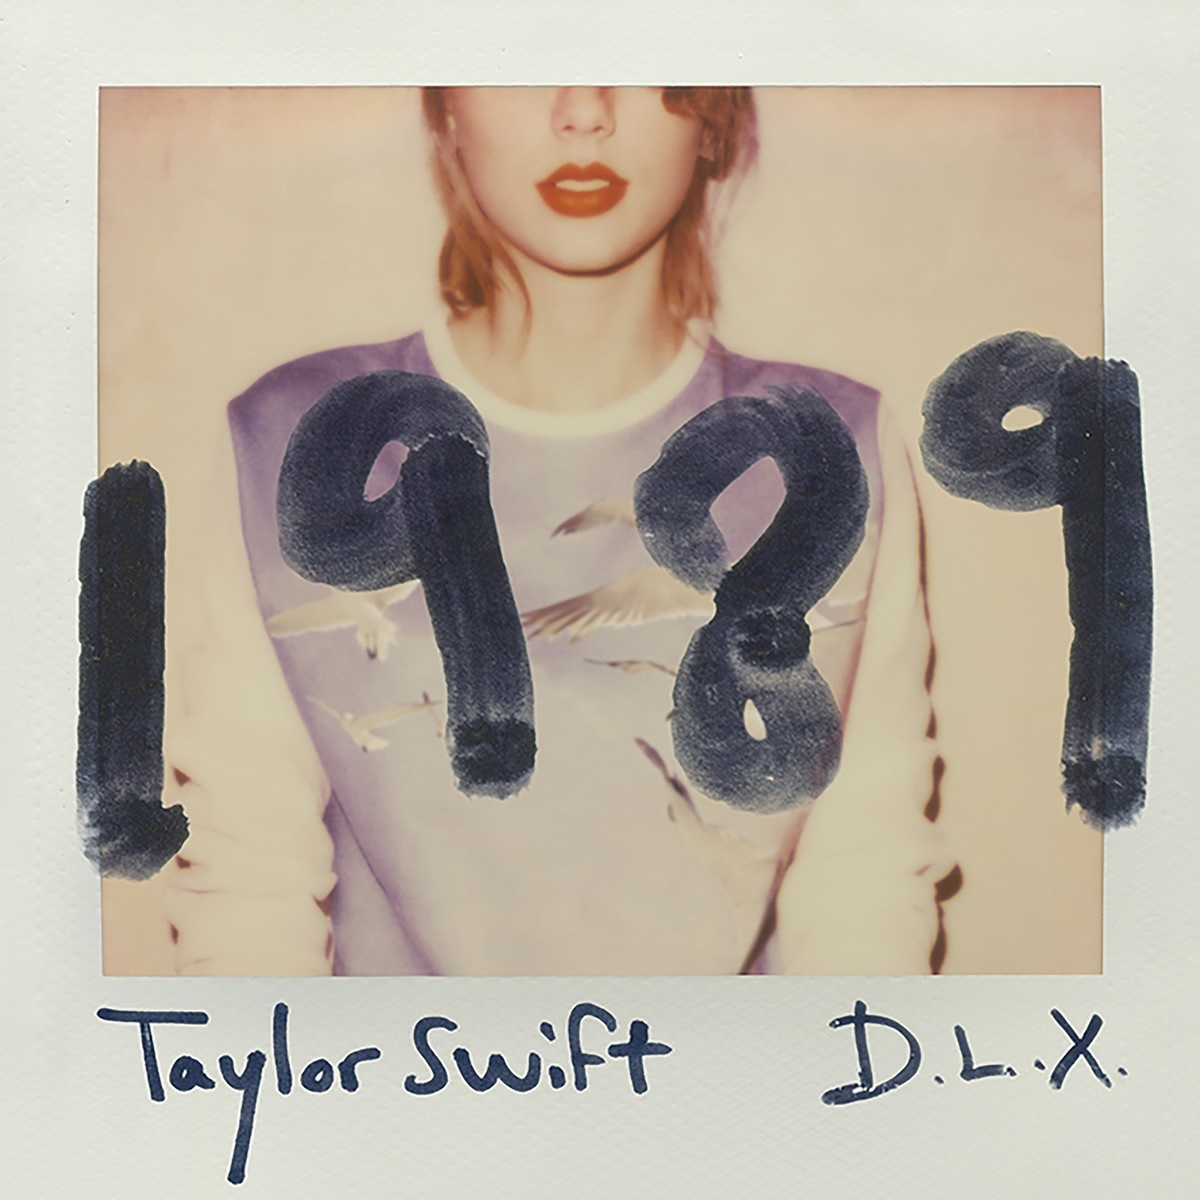 1989 (Deluxe Edition) by Taylor Swift image